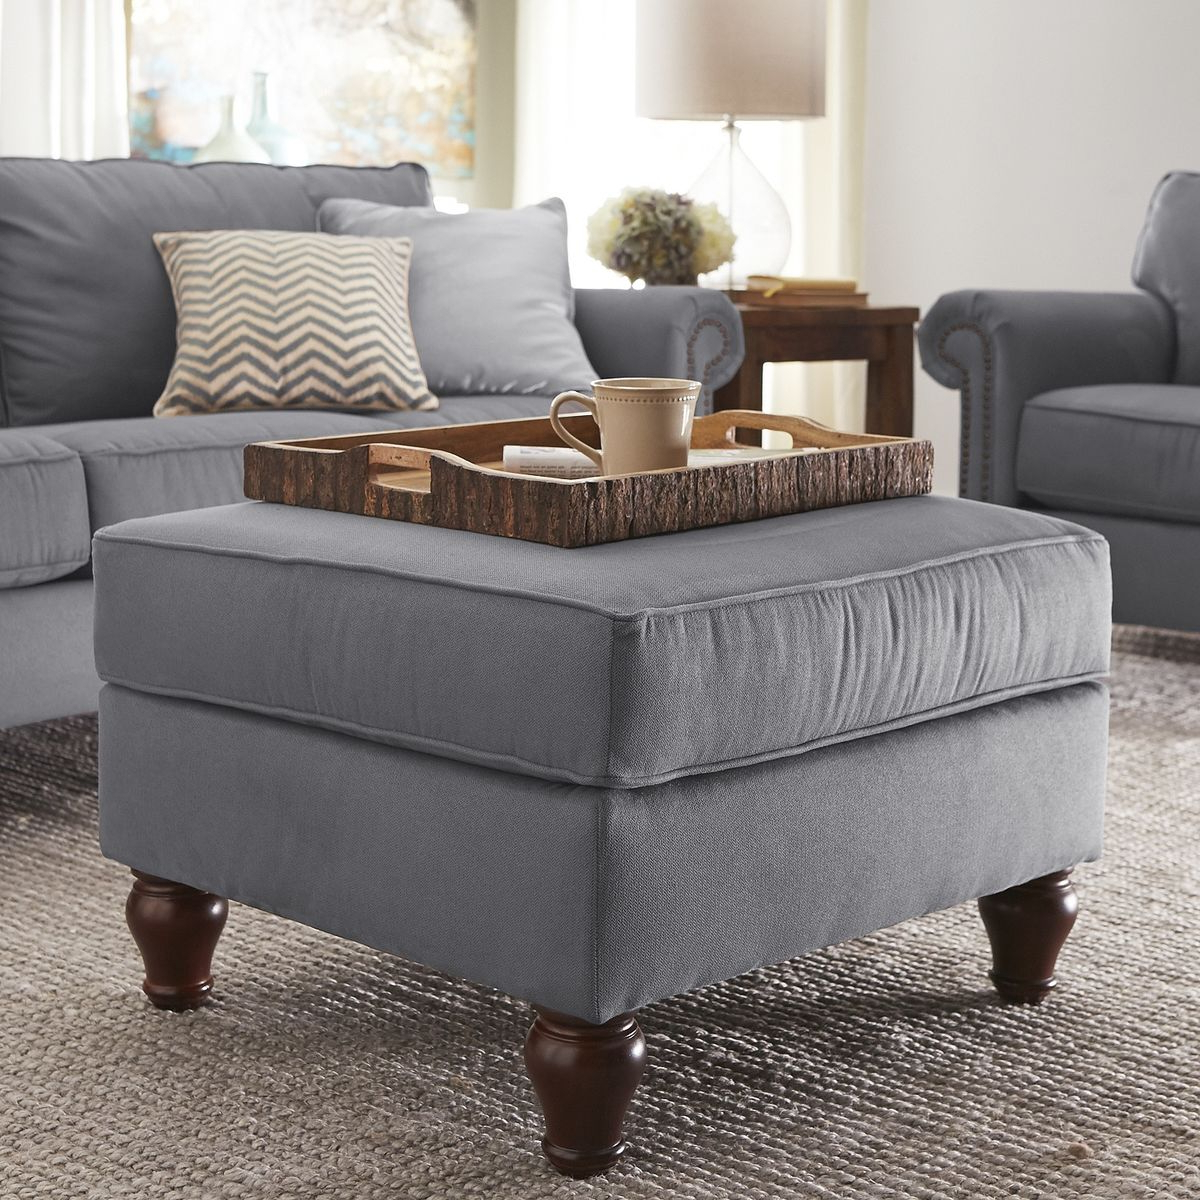 Alton Fabric Ottoman Coffee Table Graphite Gray Upholstery Large Regarding Well Known Alton Cocktail Tables (Gallery 19 of 20)